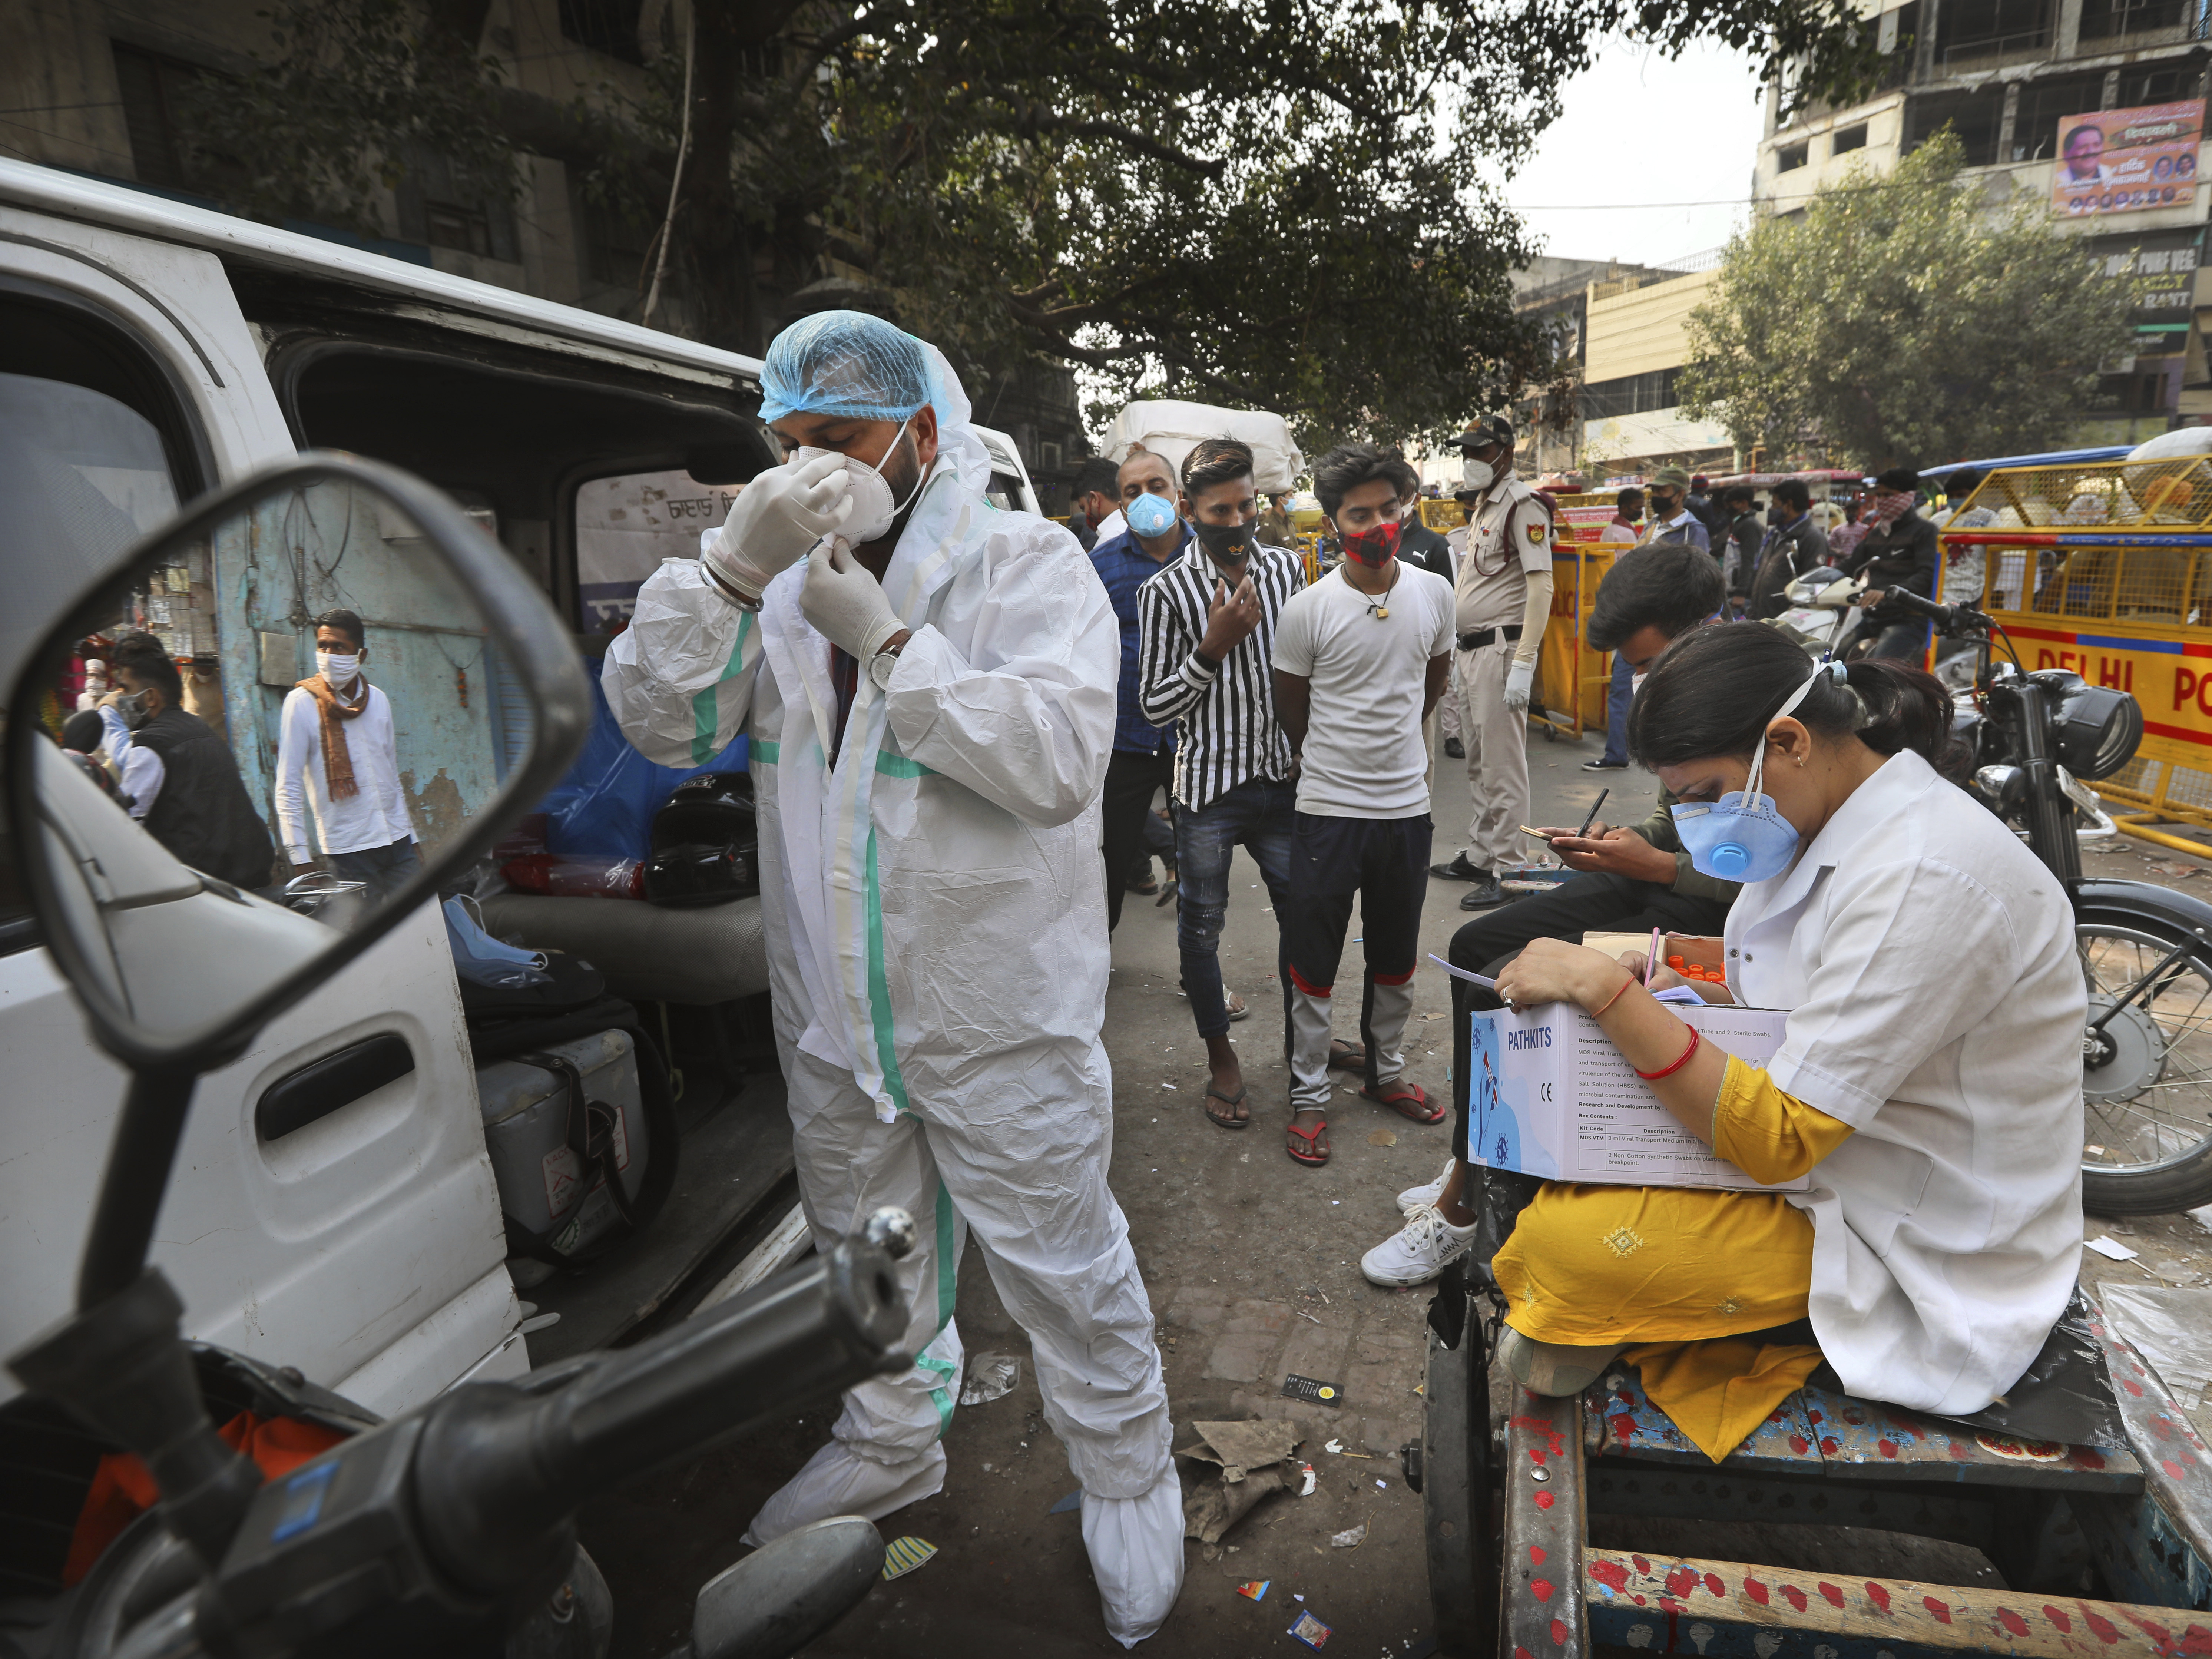 Covid-19: Vaccine distribution in India soon for emergency use